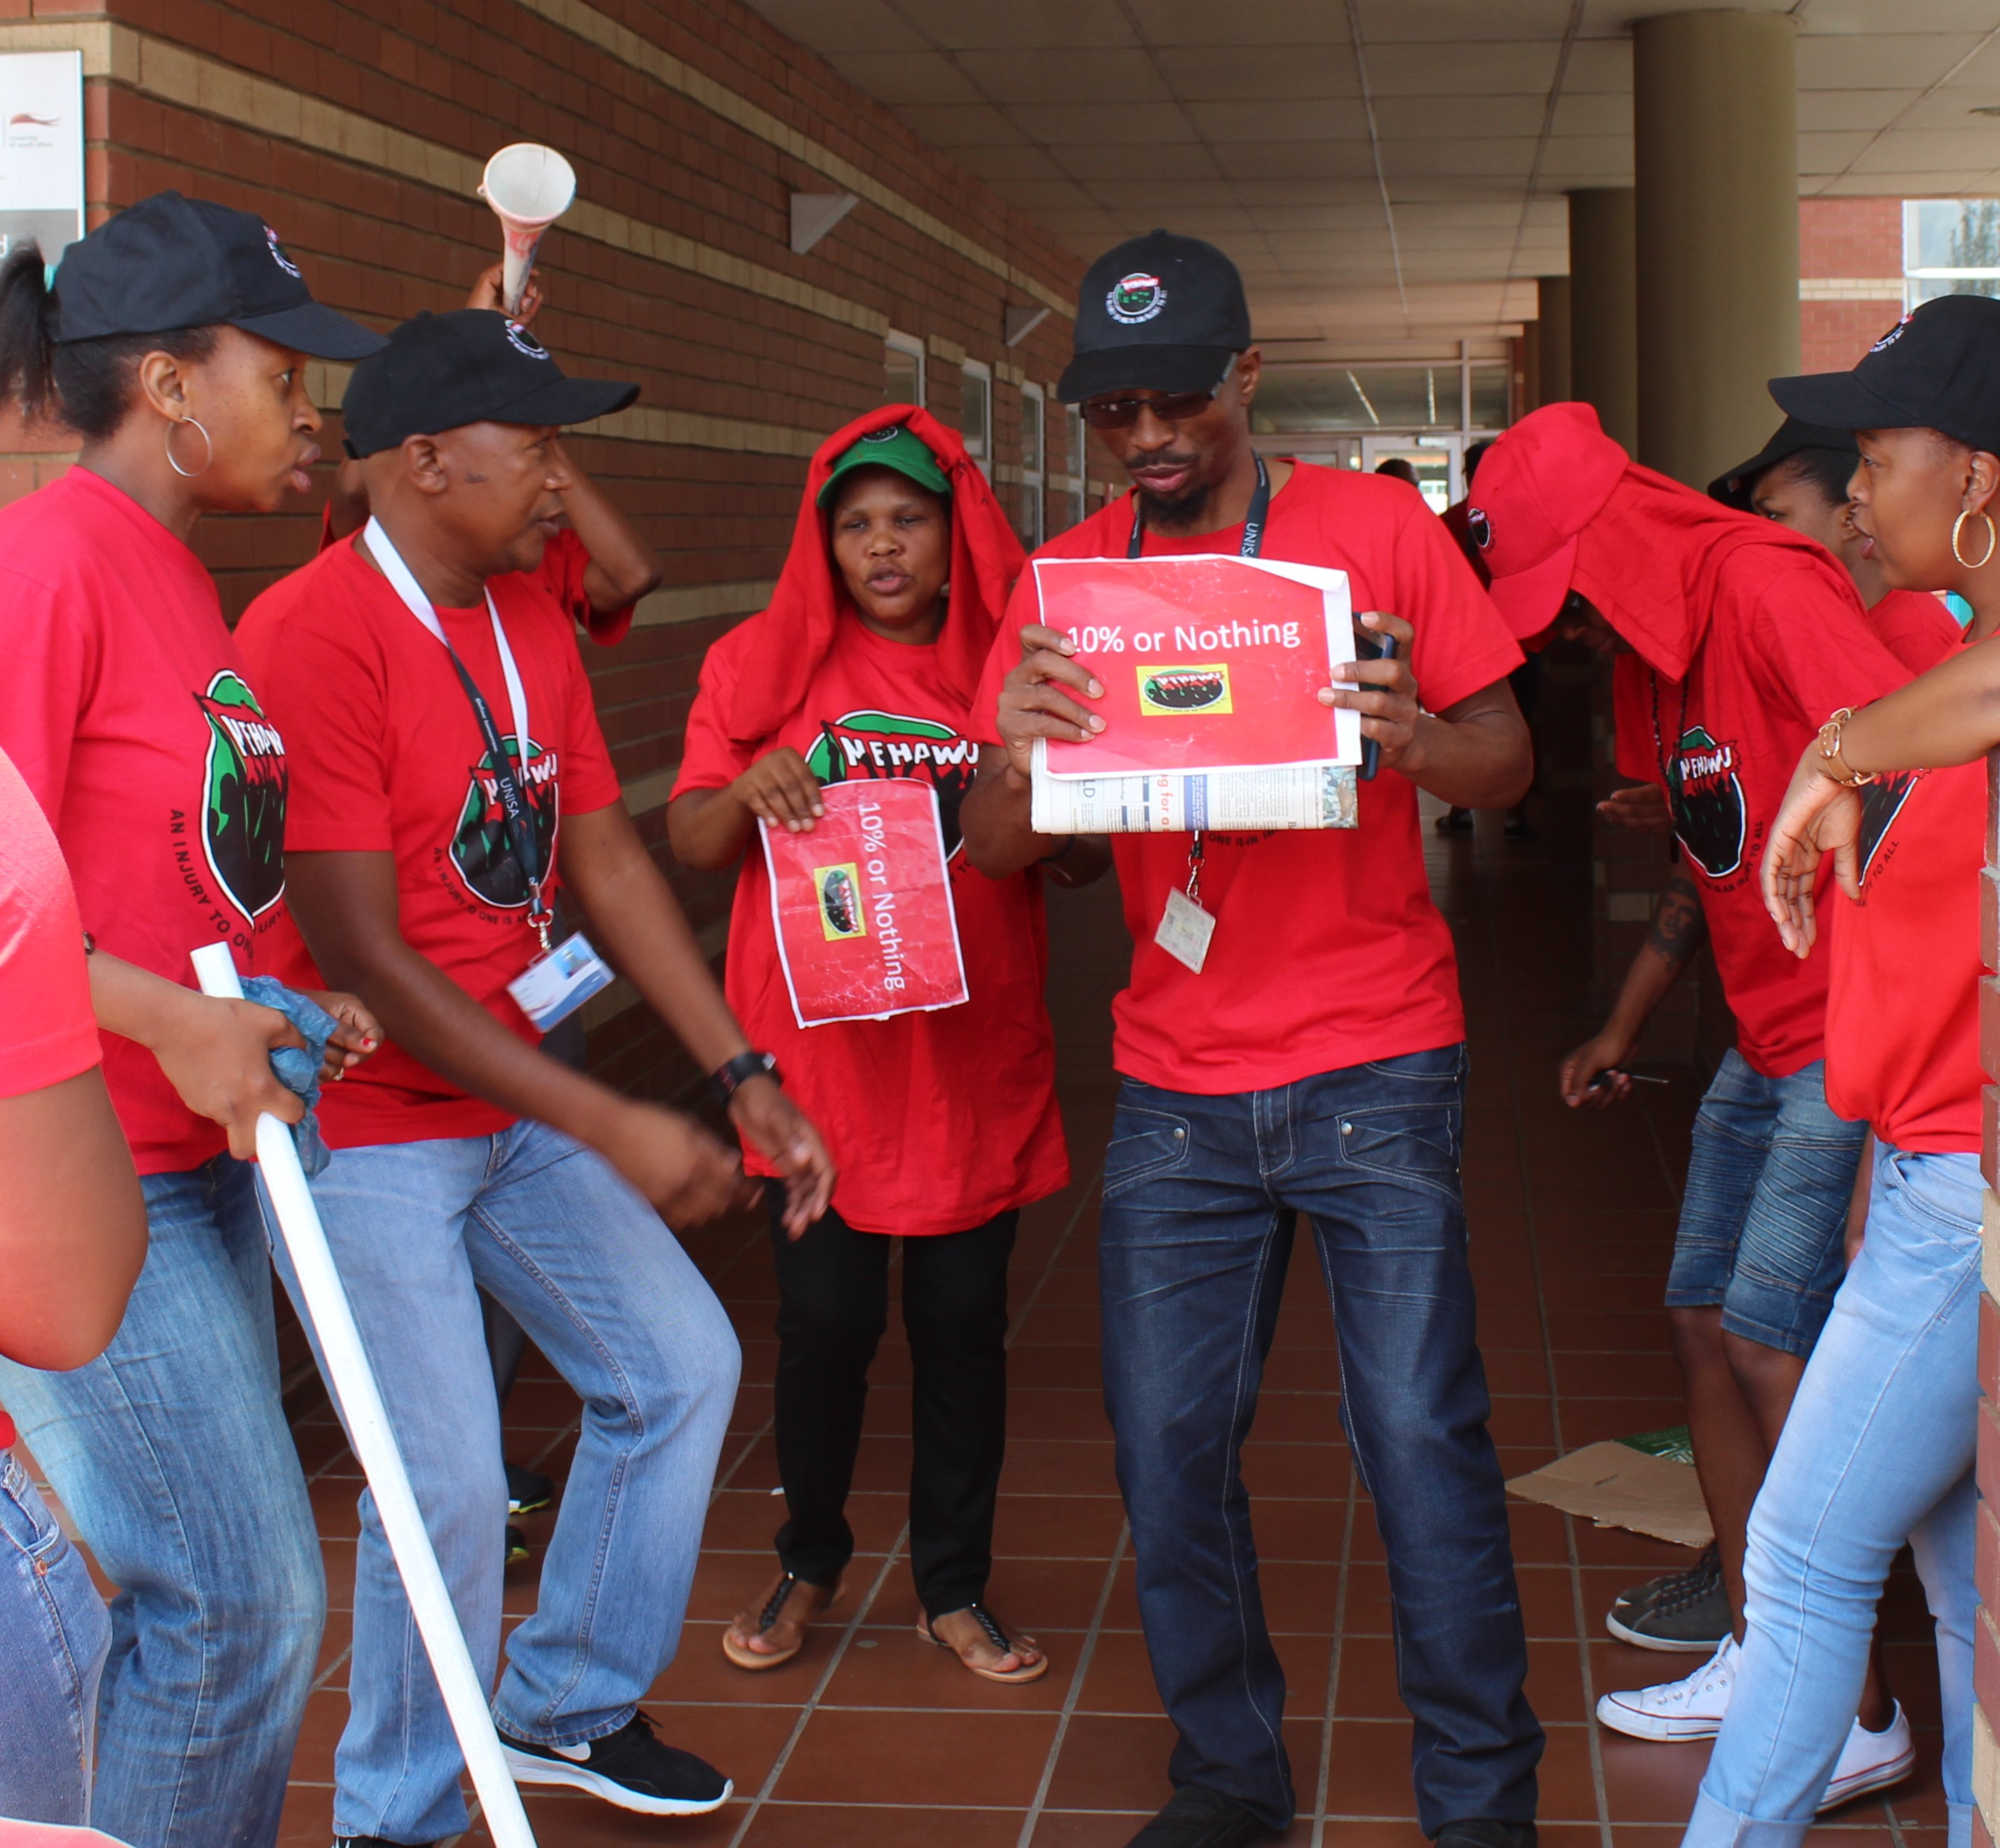 School Students Take To Streets To Protest Against Gun: Unisa Workers In Bfn Take To The Streets